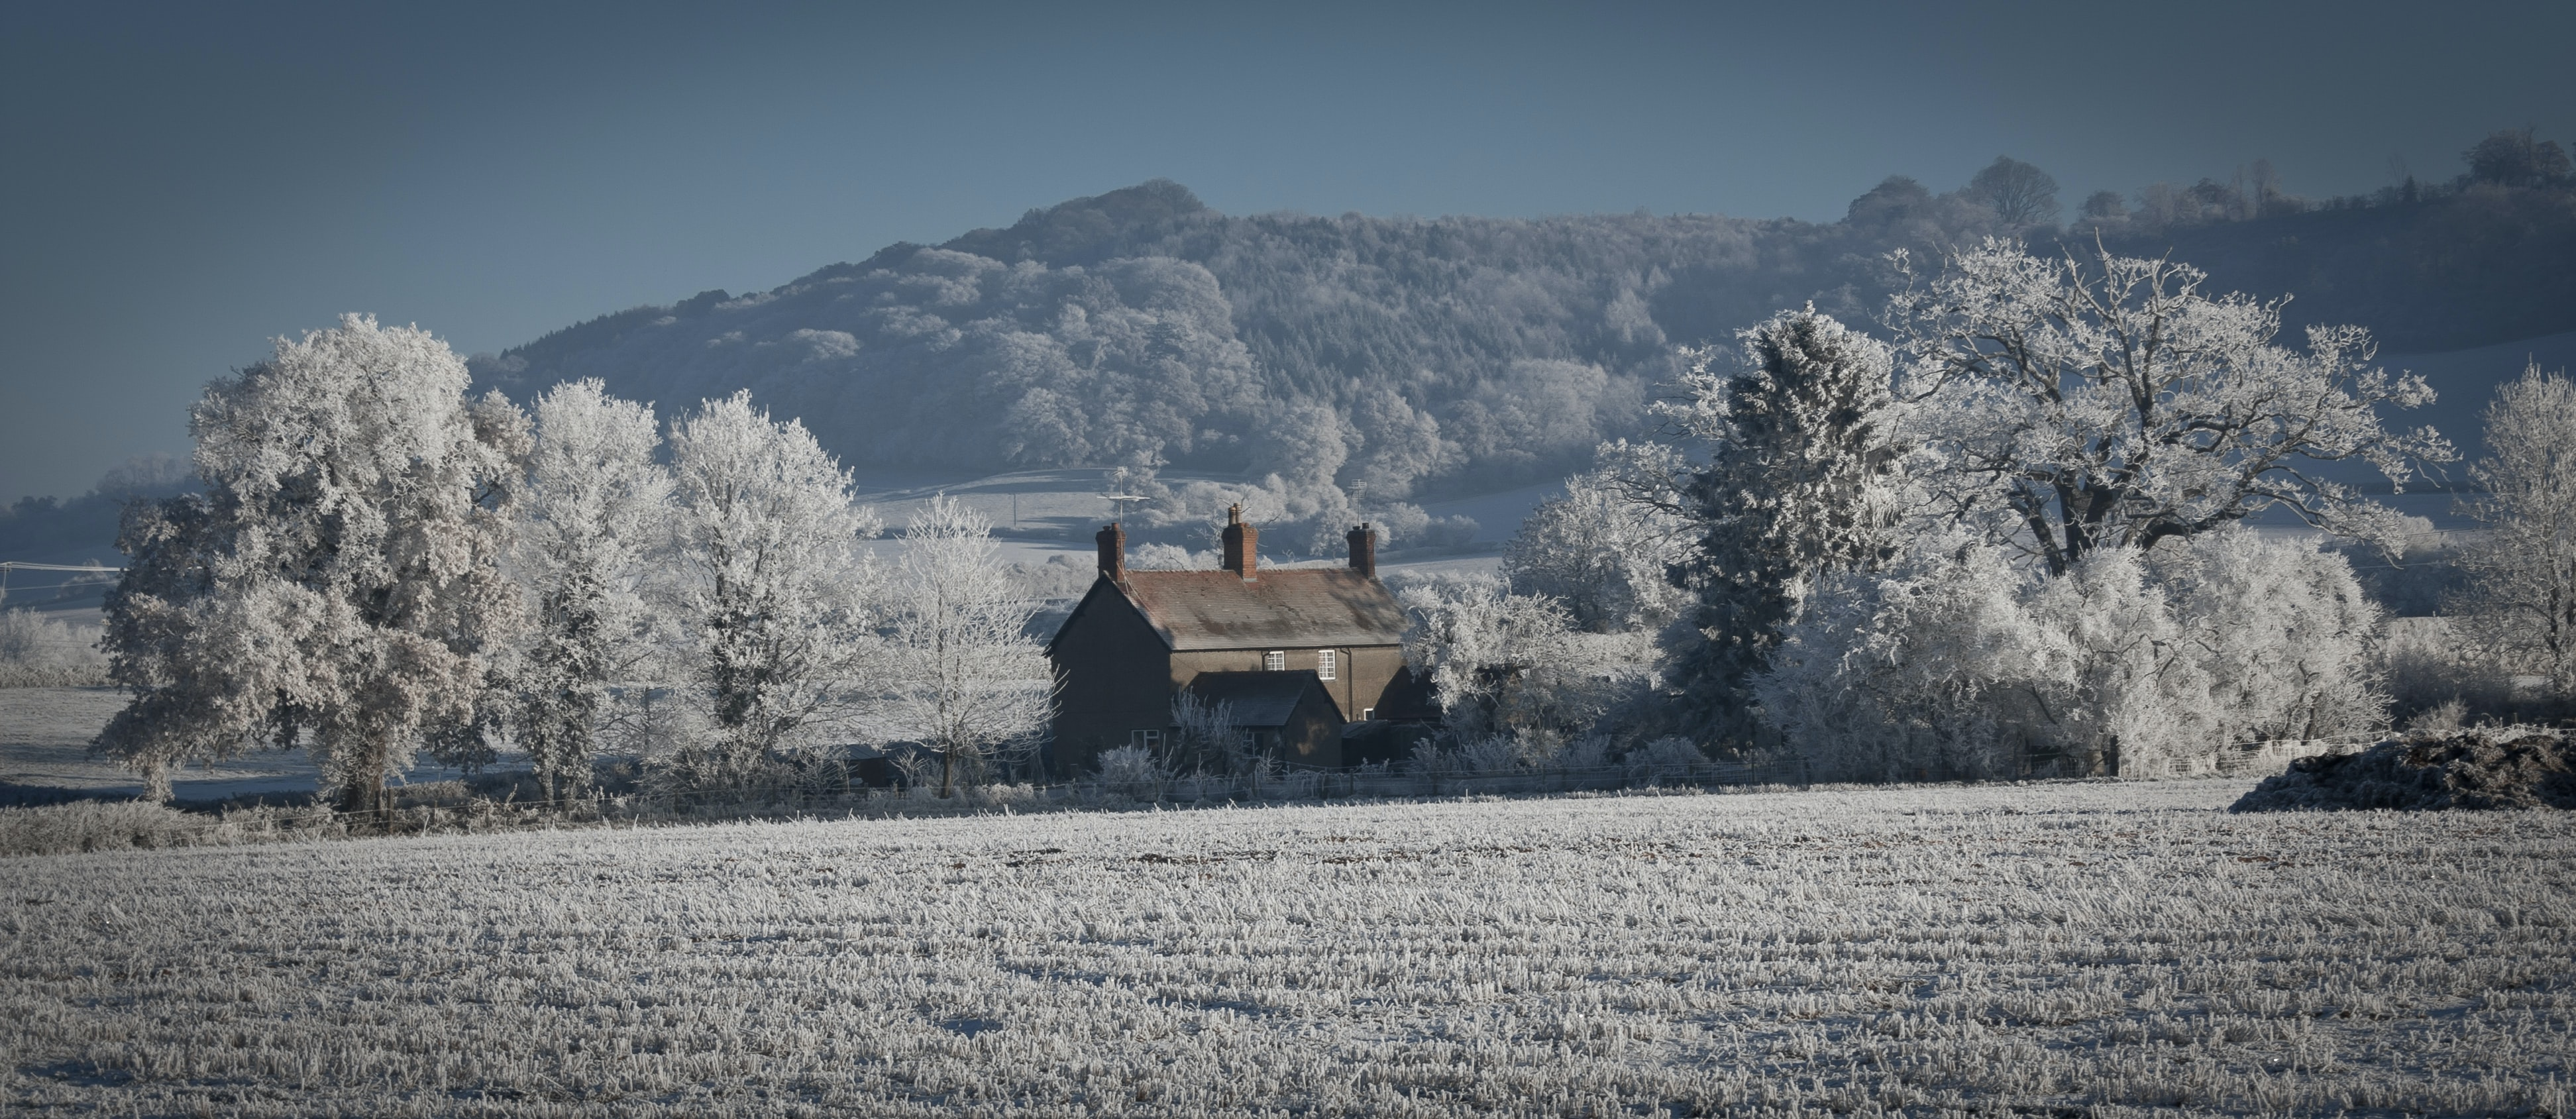 A rural house sits between two snow-covered trees on a farm in Shropshire, UK